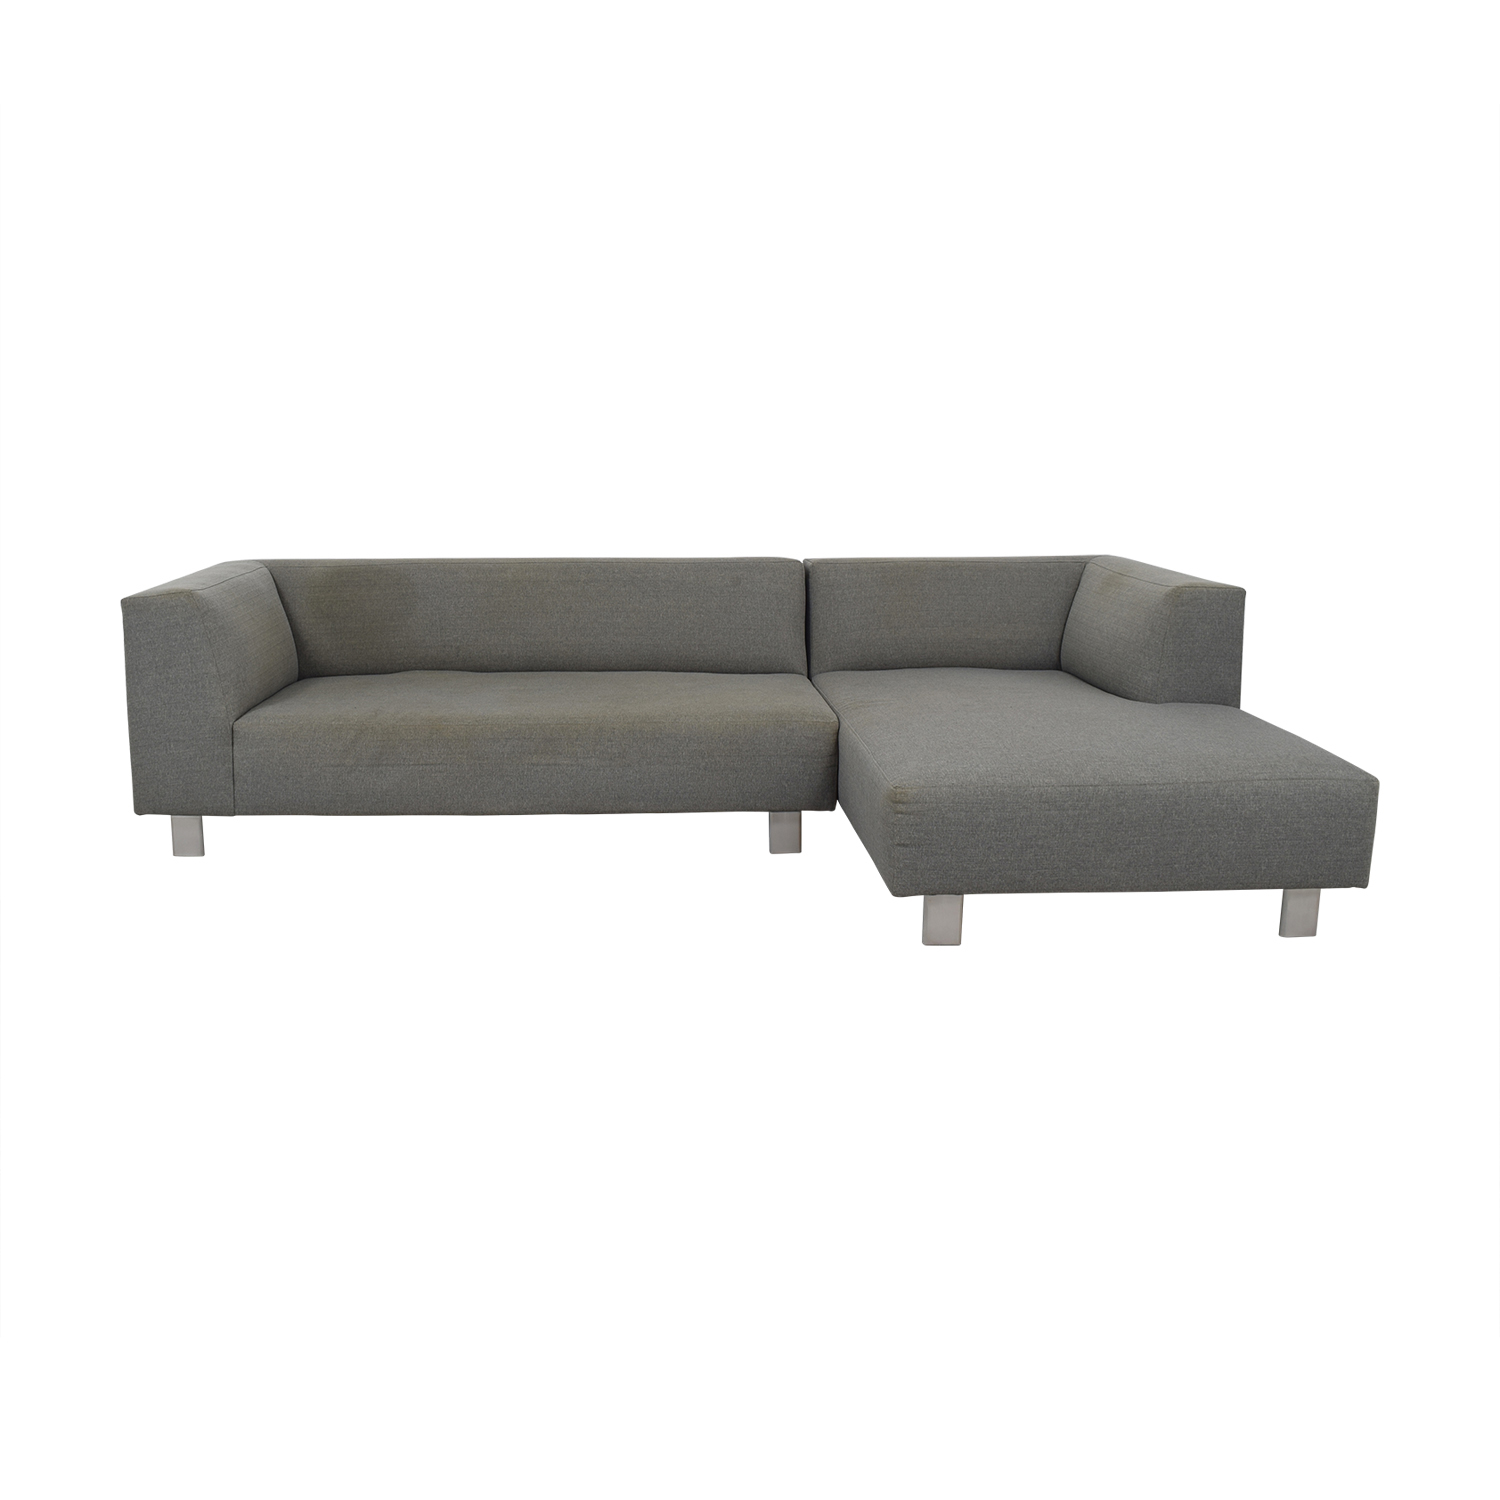 Room & Board Room & Board Grey Chaise Sectional dimensions